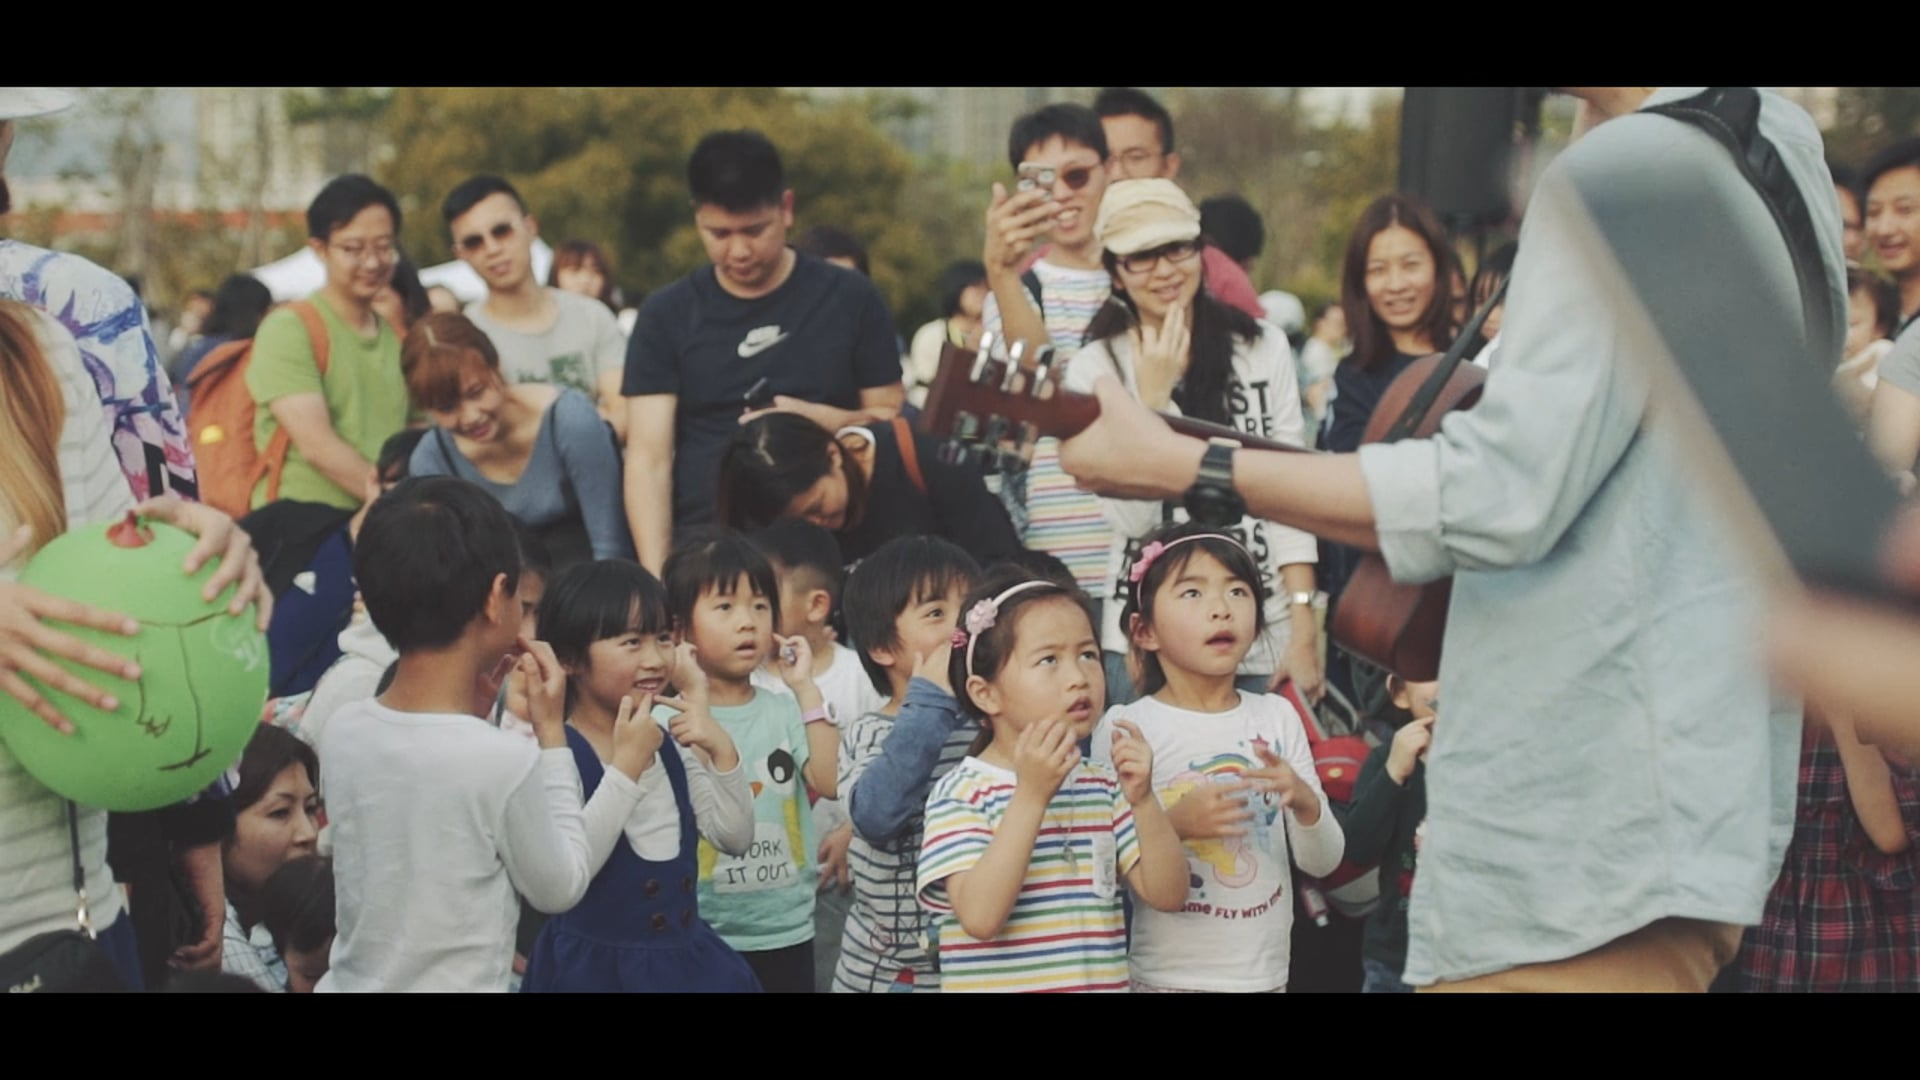 Event Video  |  Picturing Central and Western District @ West Kowloon  (Community Engagement)